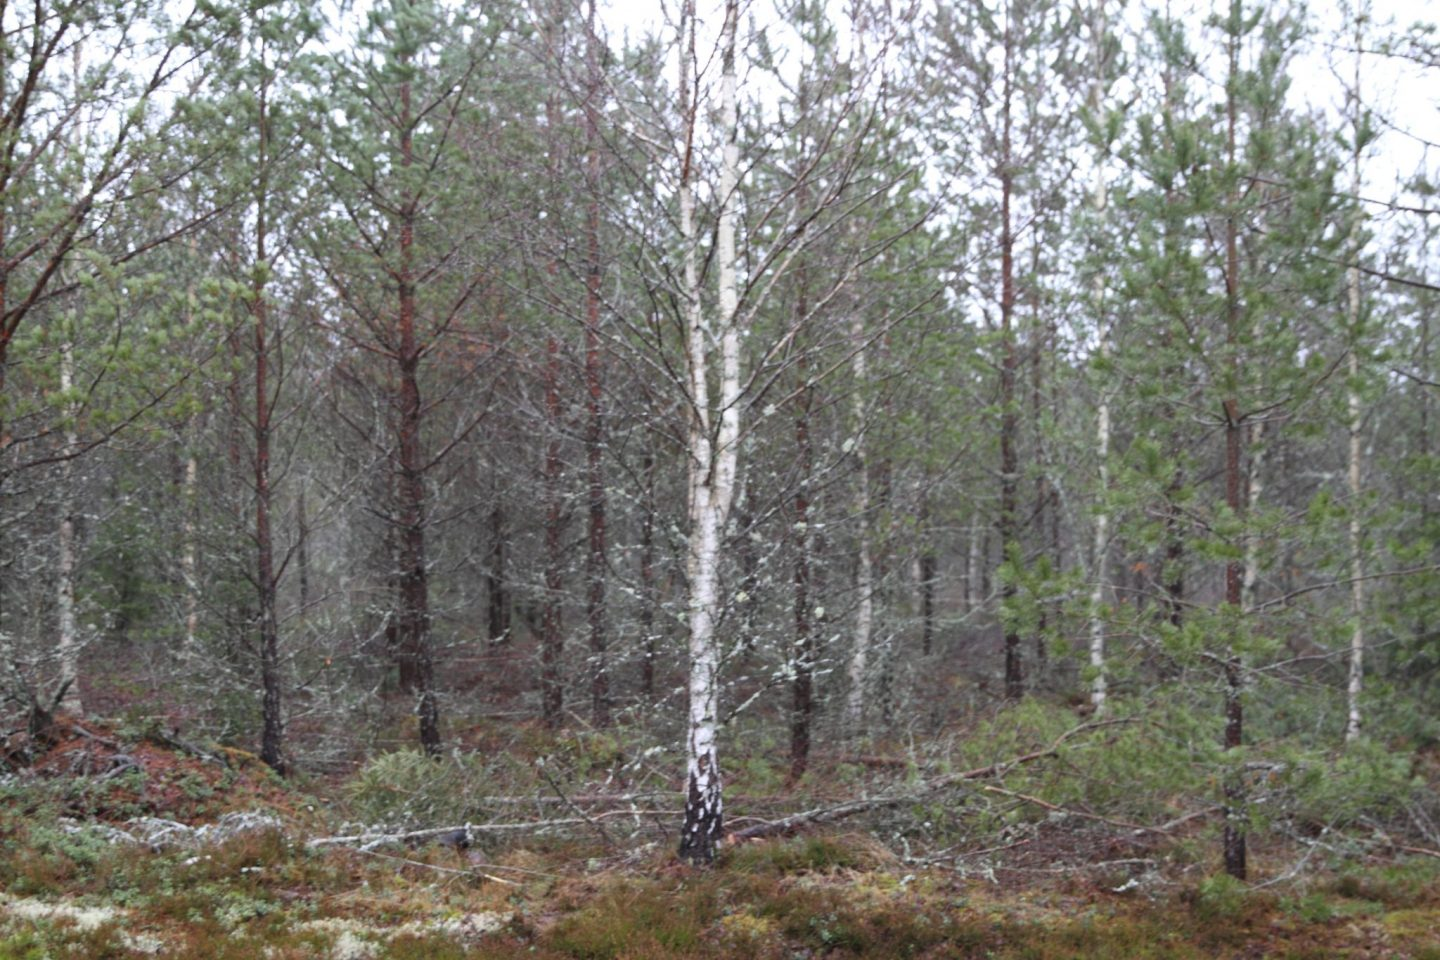 Swedish forestry # 4 – Pre commercial thinning